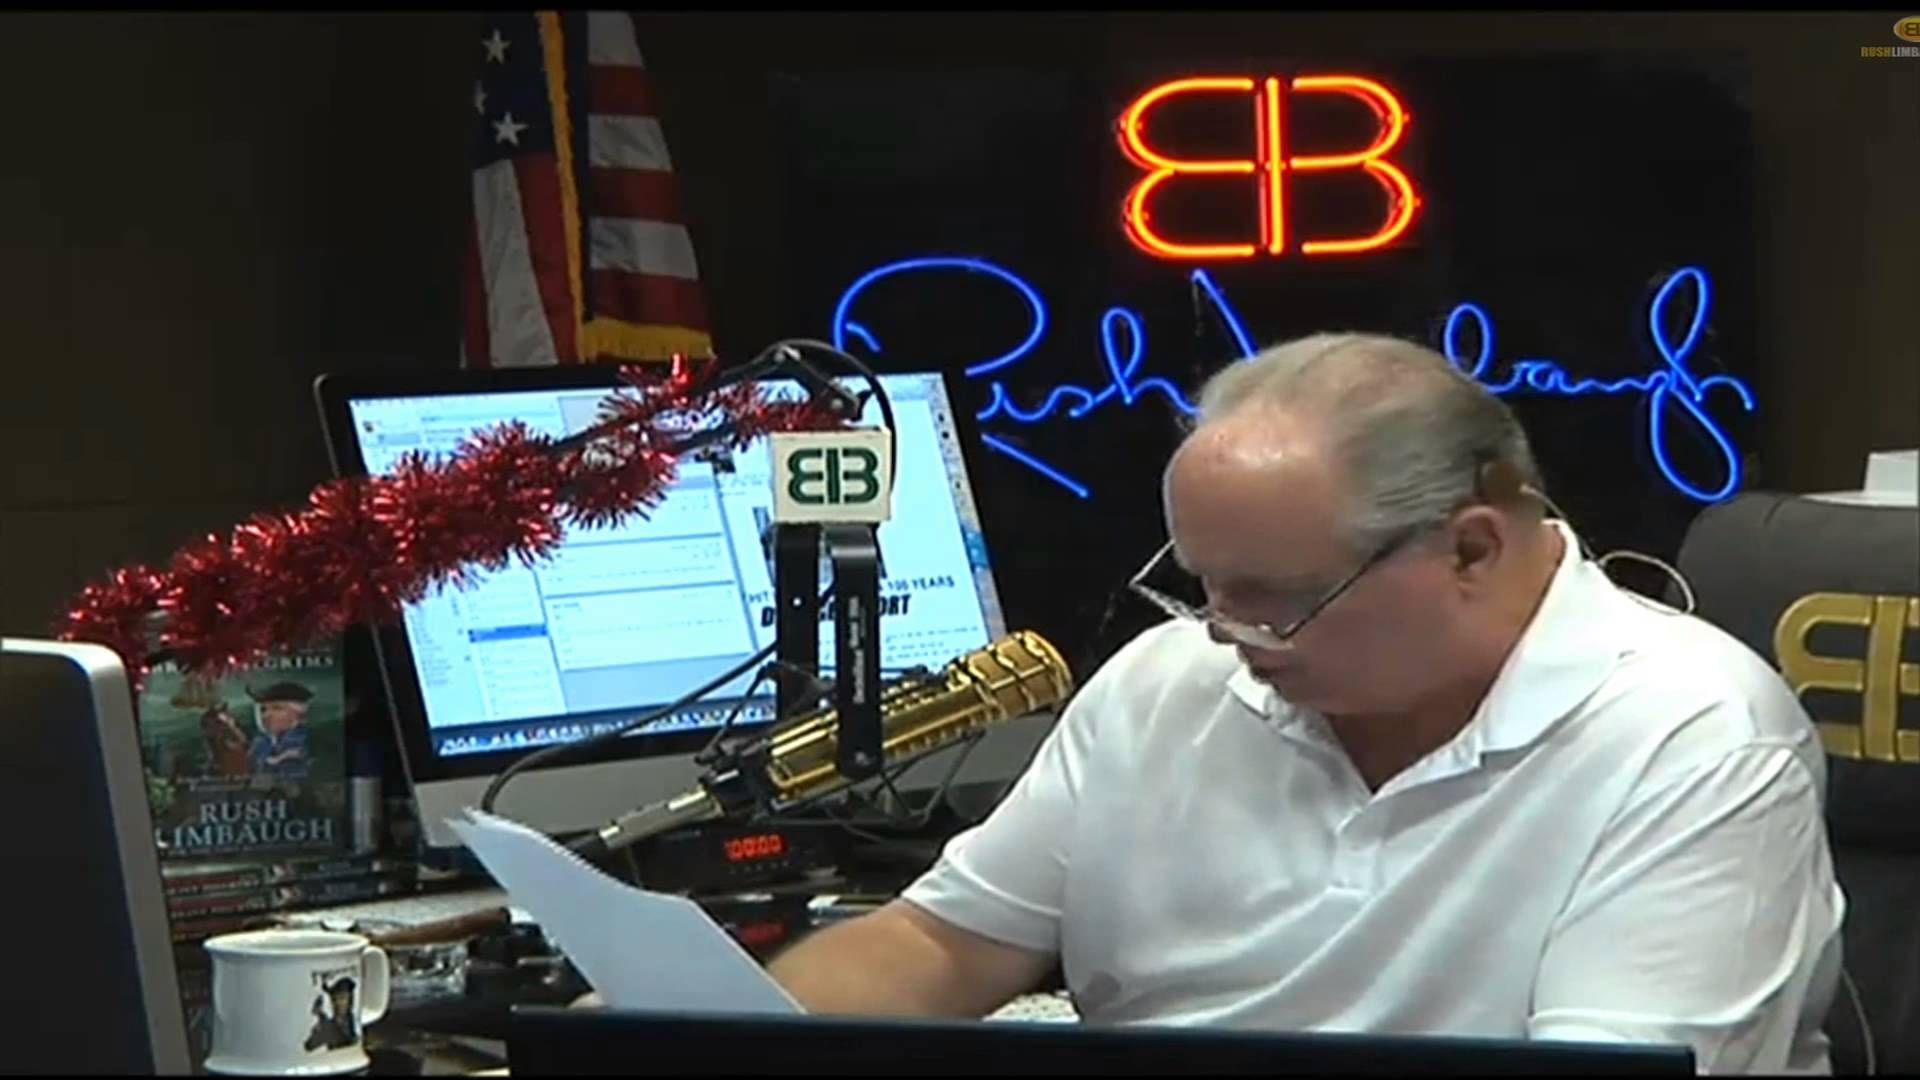 Rush Limbaugh 13 Things Mentally Strong People Avoid